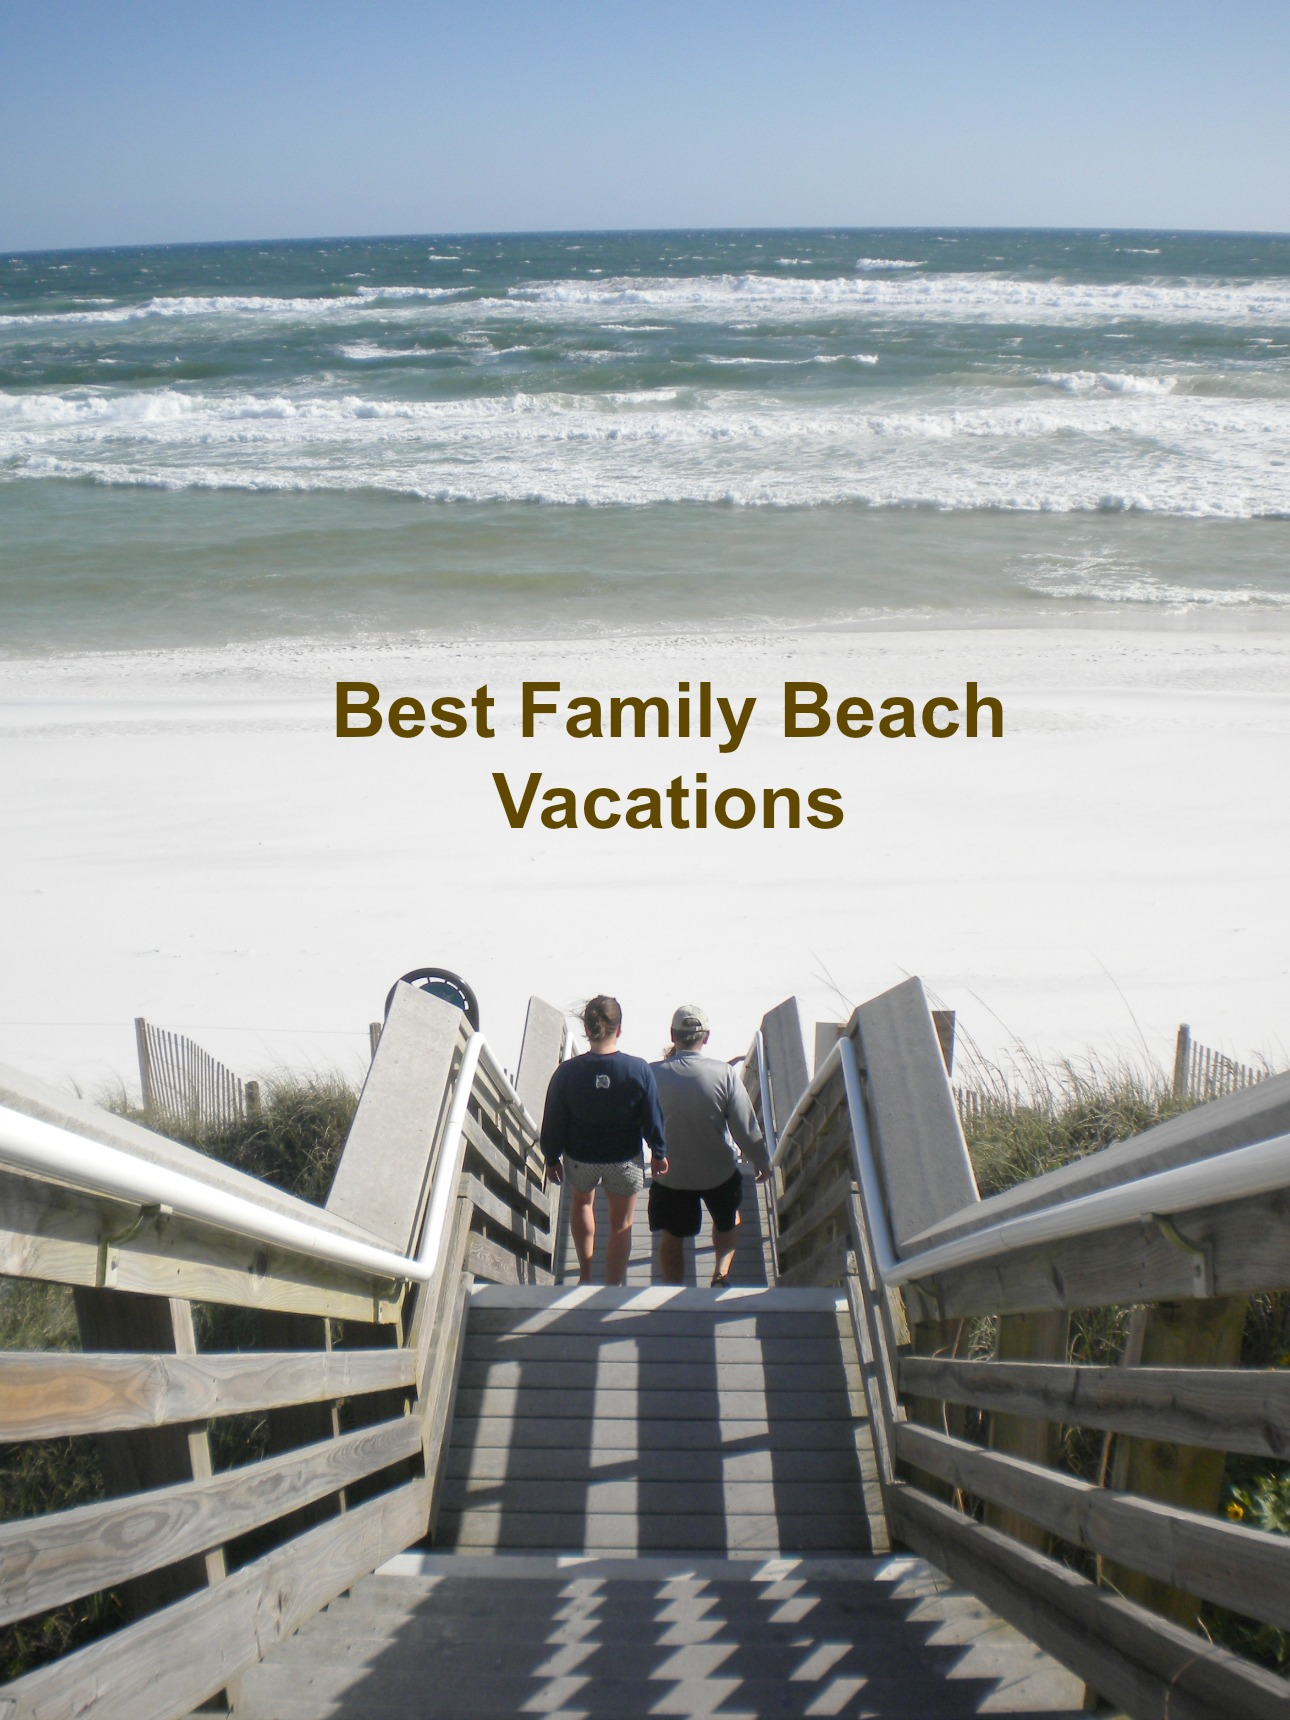 Best family beach vacations our family 39 s favorite beach for The best beach vacations